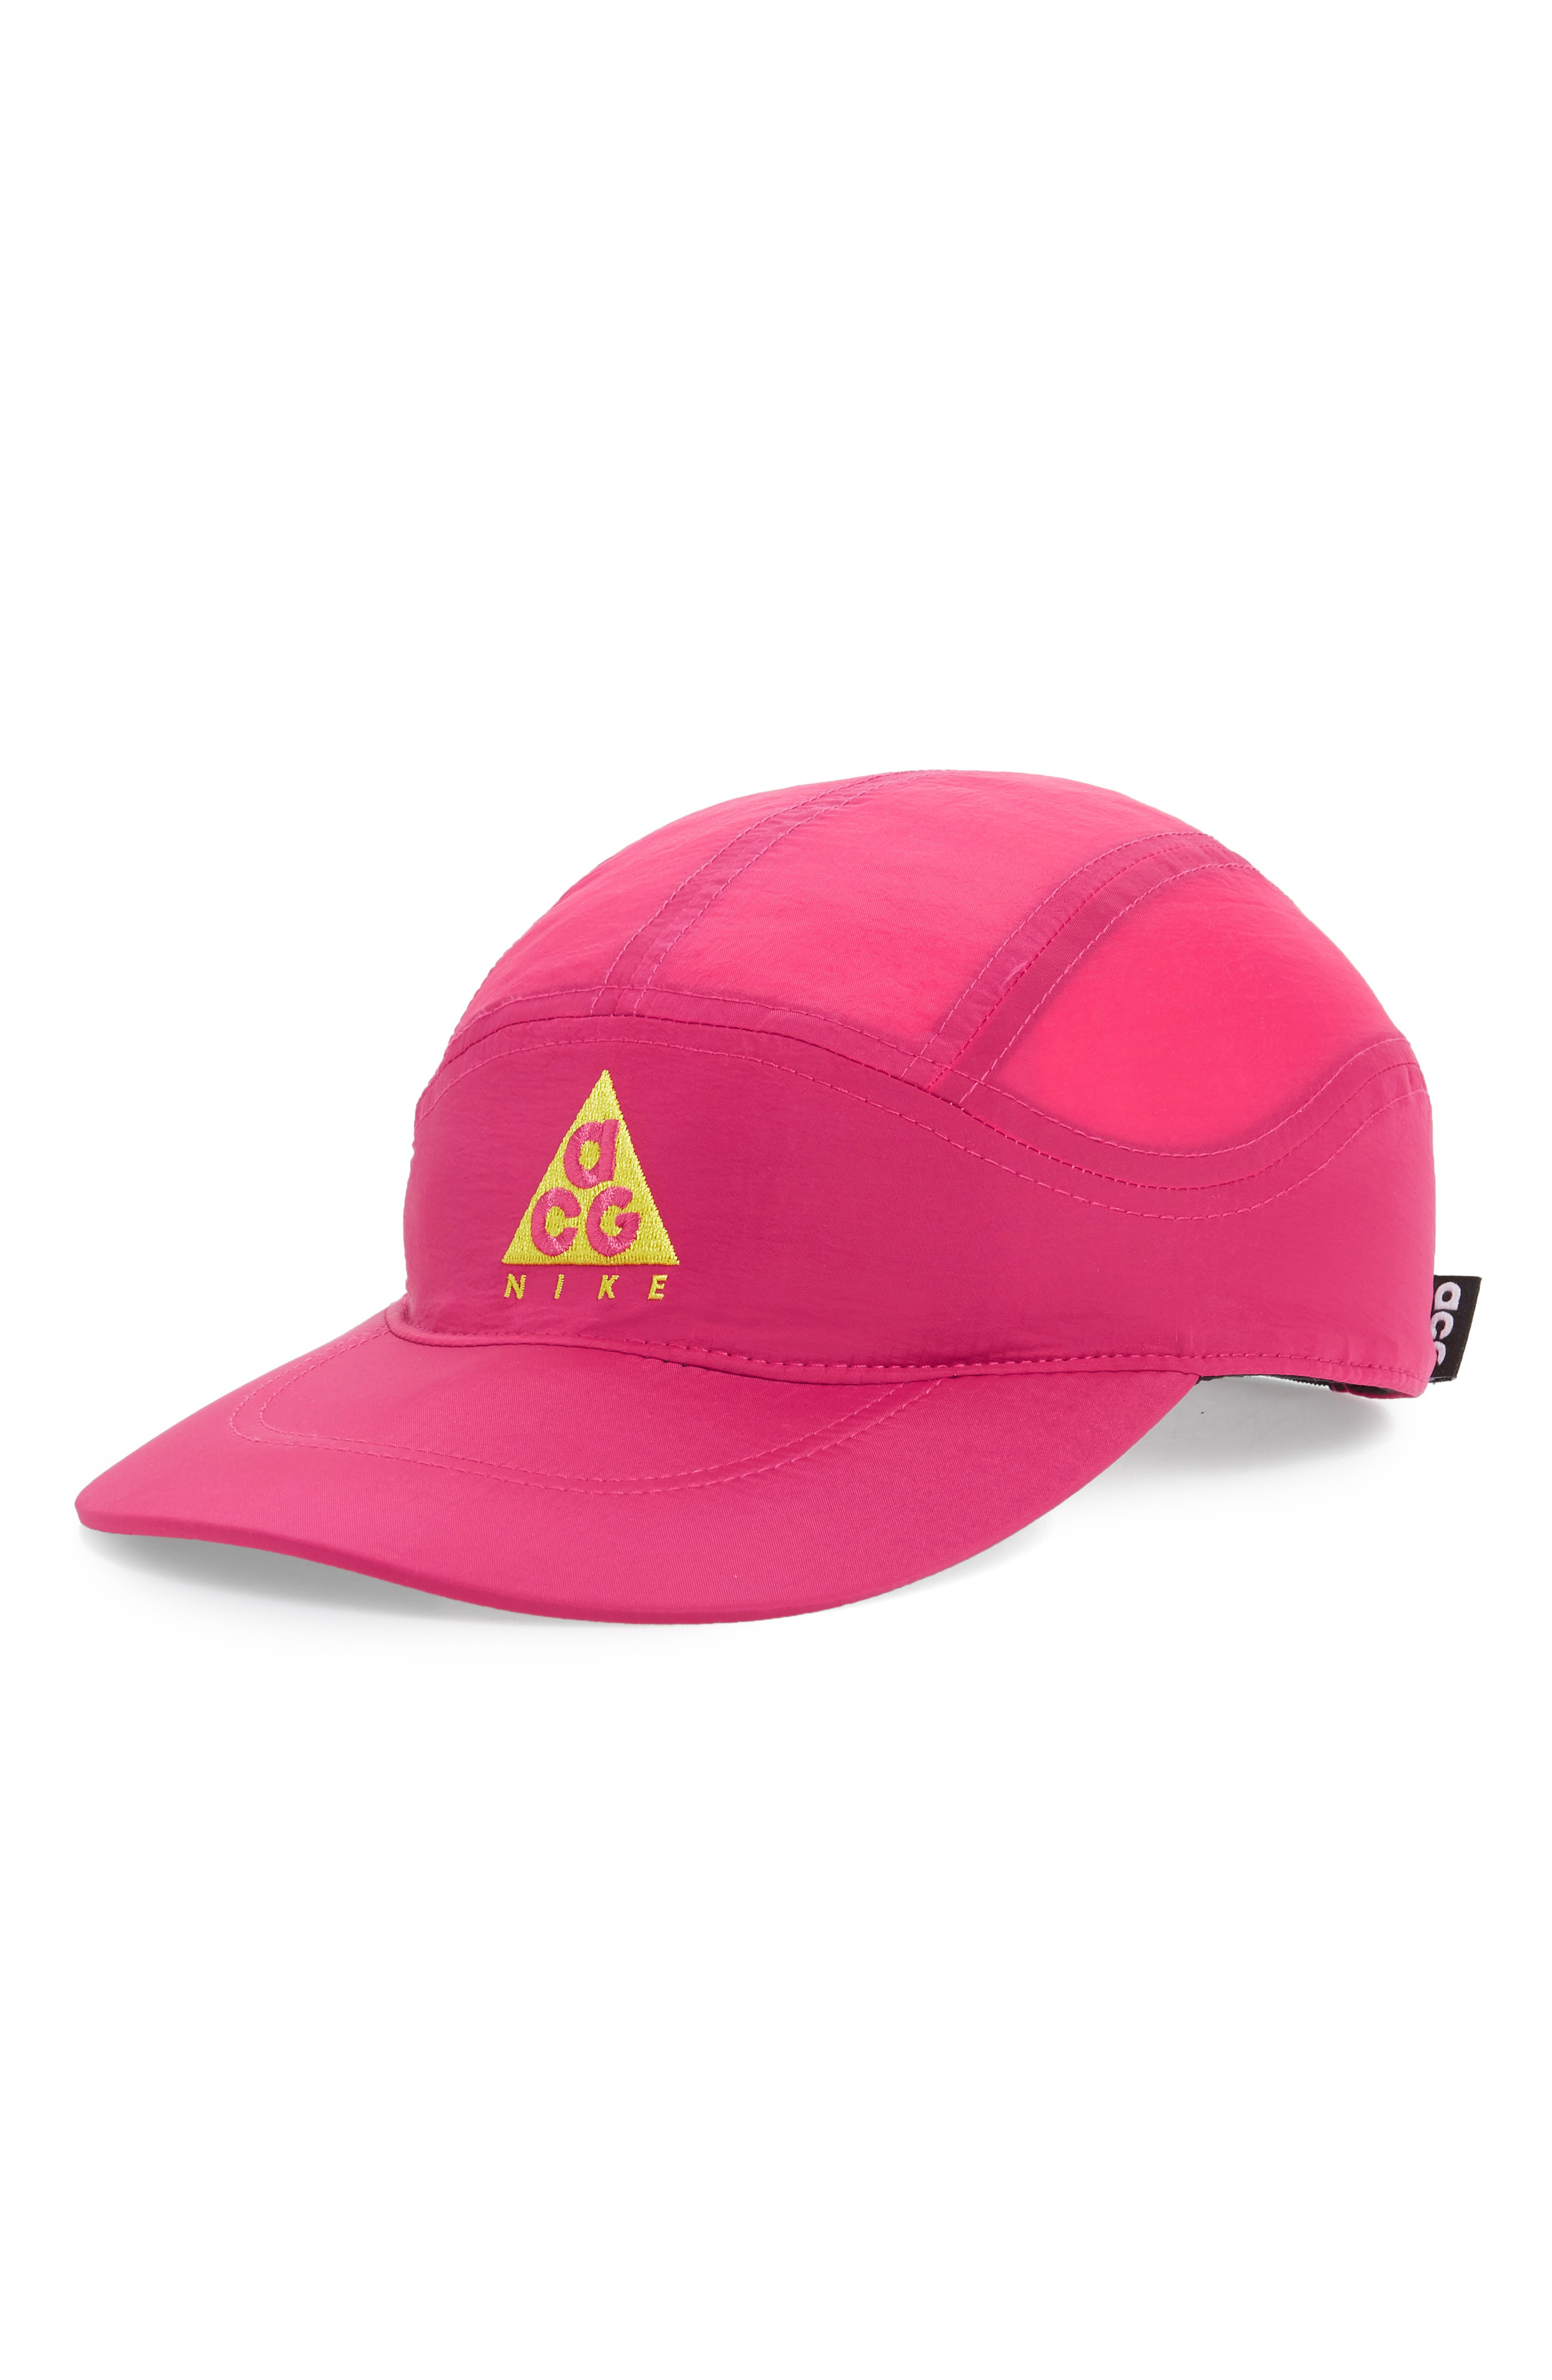 detailed look a1cea 50249 Nike Sportswear Acg Tailwind Cap - Pink In Rush Pink Opti Yellow